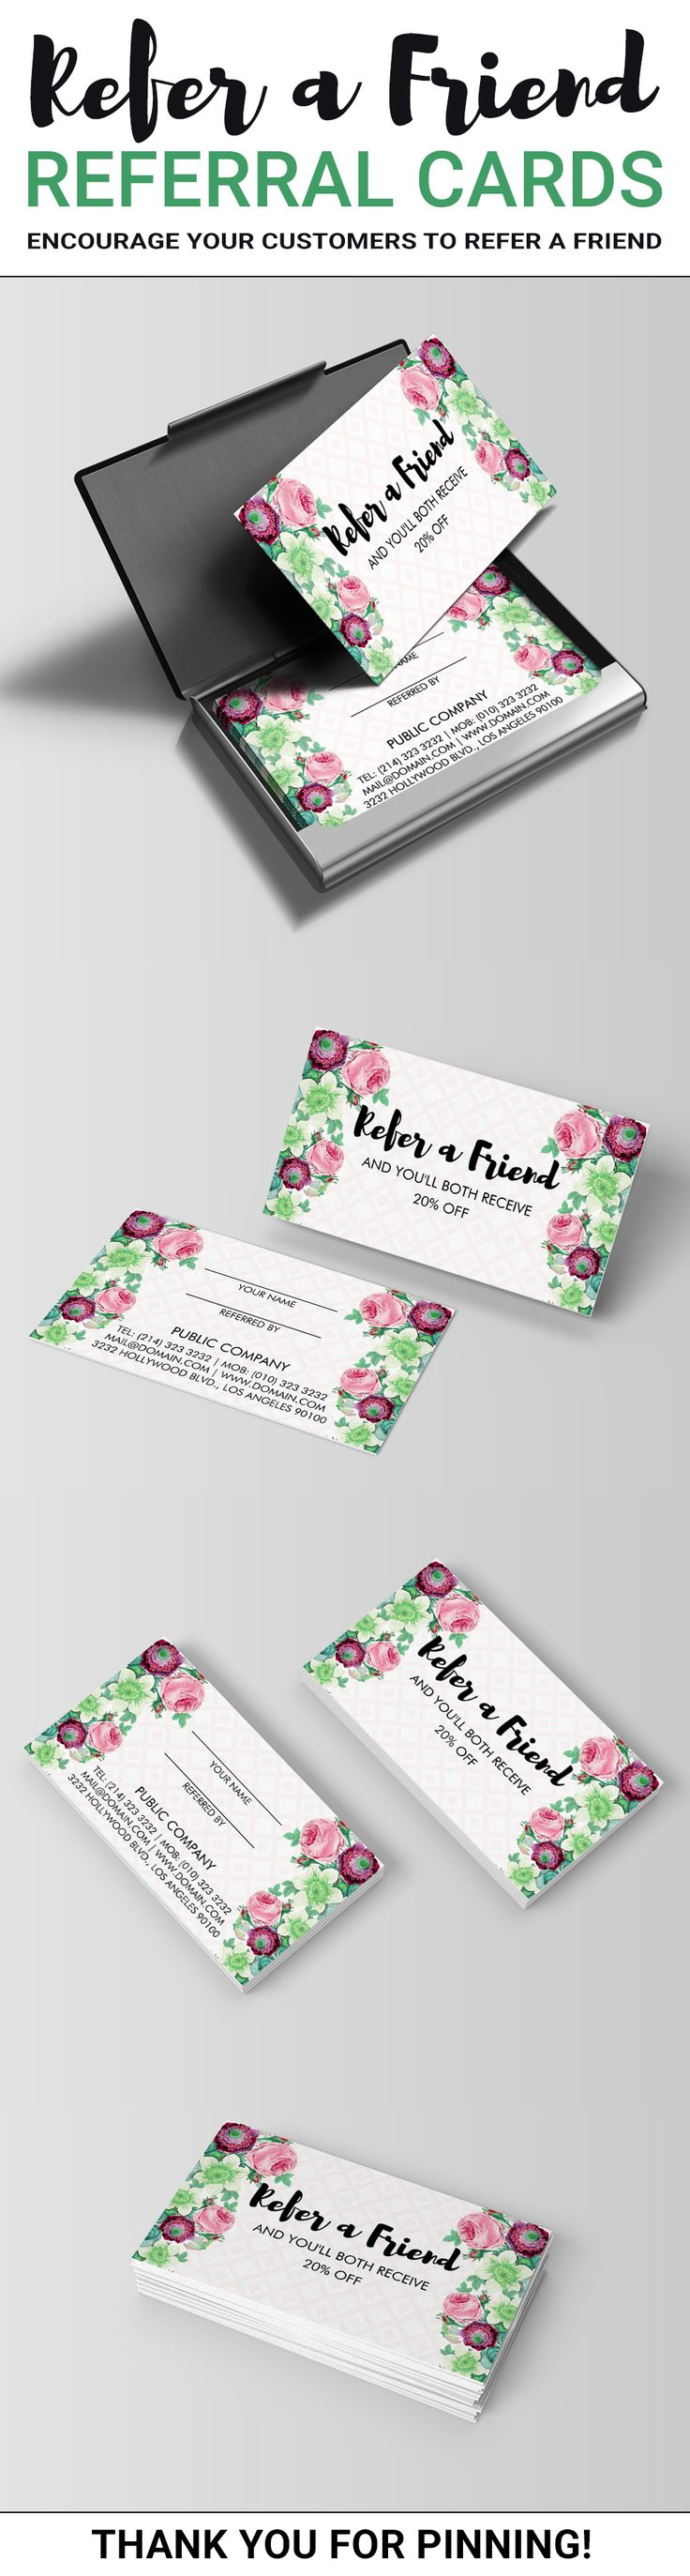 Refer a Friend Referral Cards by J32 Design. Encourage your customers to refer a friend with these beautiful floral referral cards. This customizable template can be personalized with your coupon and business information. Flower themed refer a friend cards come in the standard business card size of 3.5 x 2 inches. Ideal for small businesses who would like to start a referral program for their customers to gain new clients. Floral Flower Referral Cards created by J32 Design.